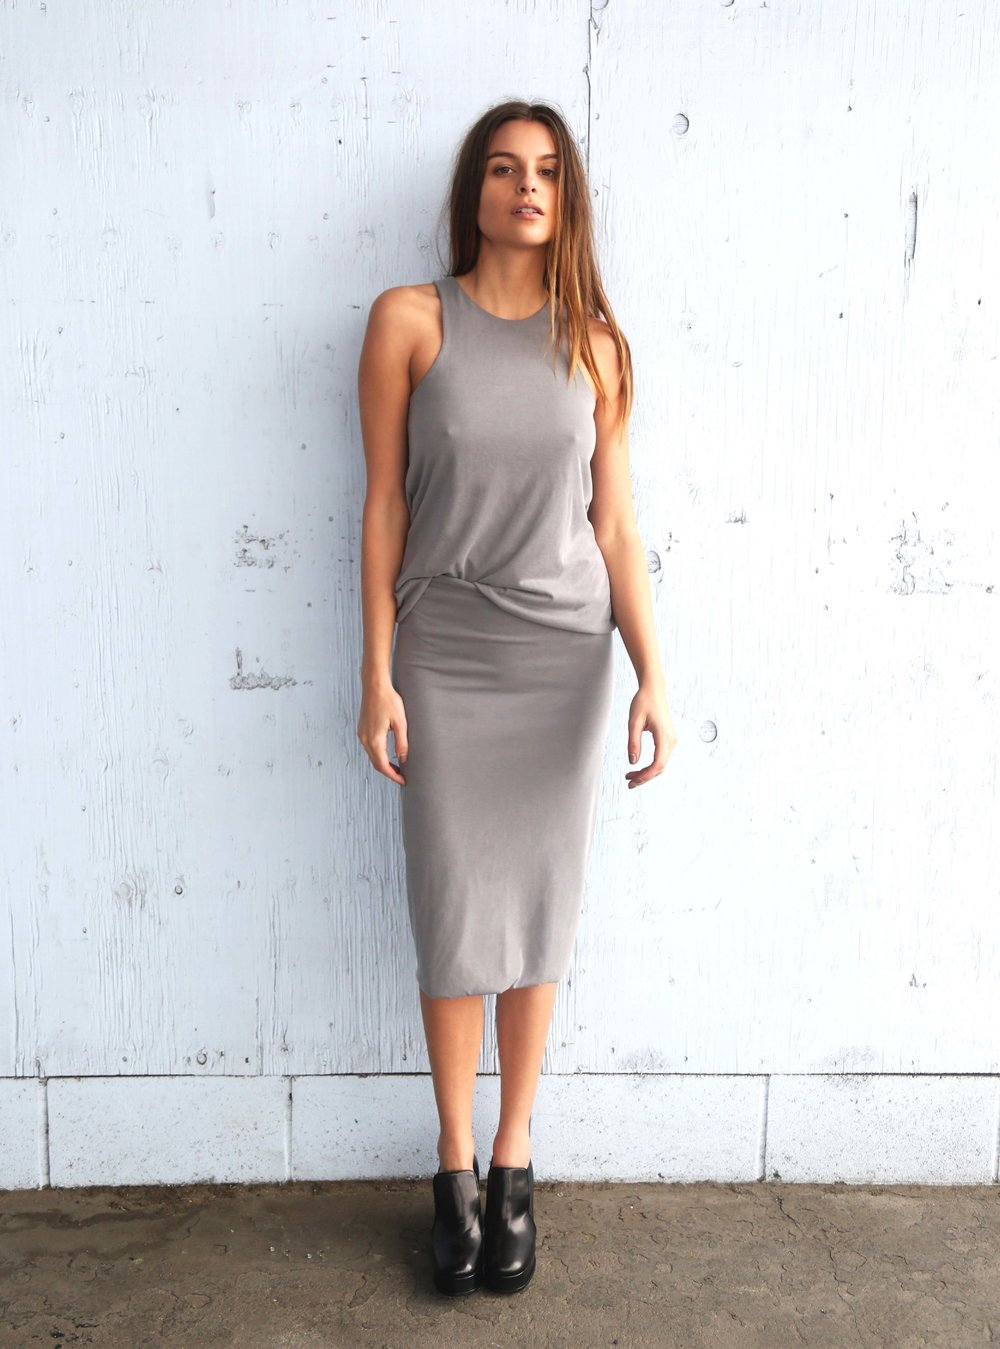 Brett Tank, Reagan Skirt in Grey